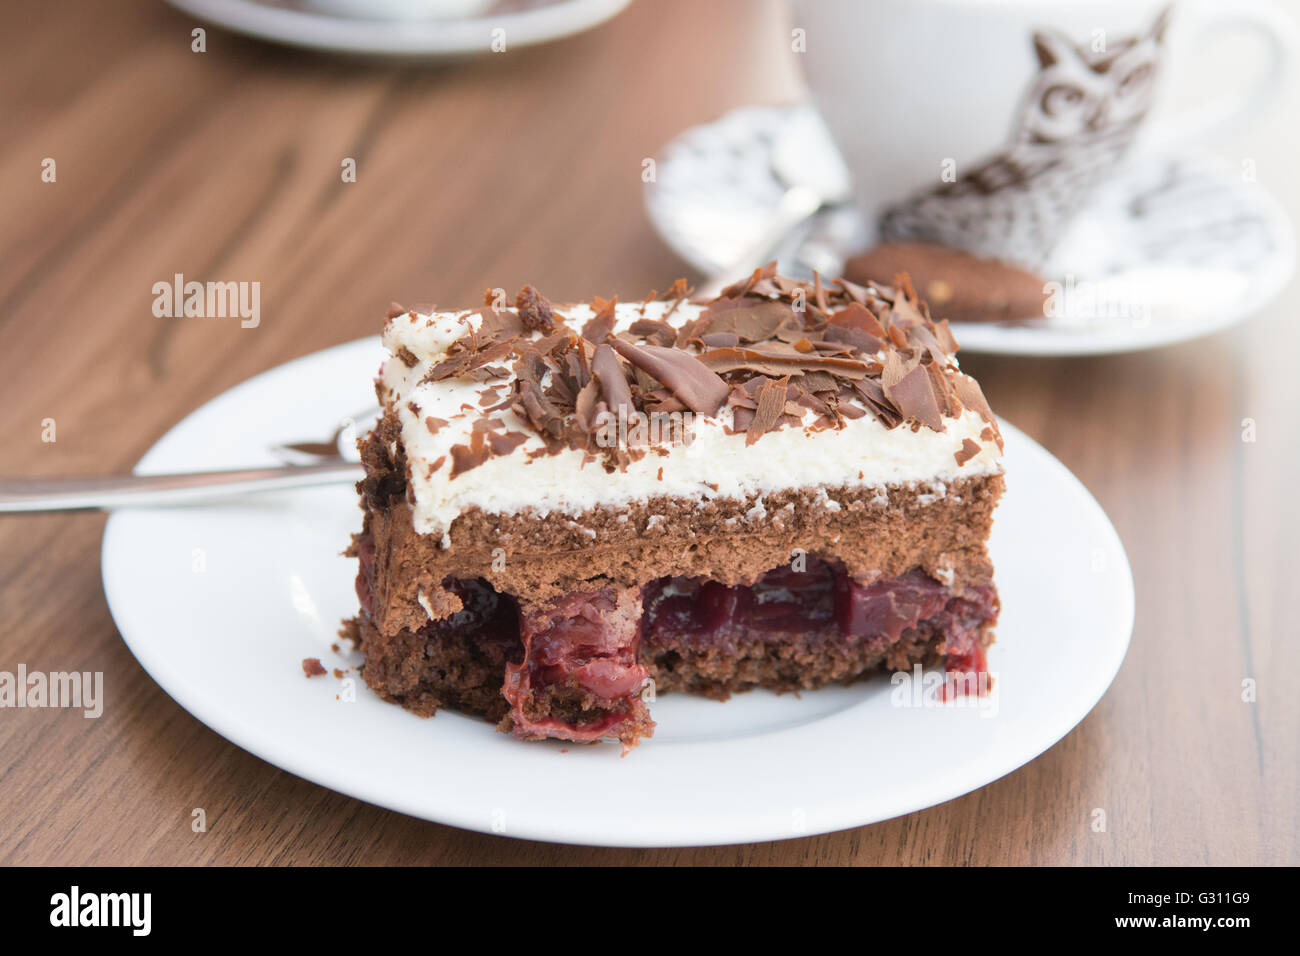 cake from Cukiernia Sowa coffee shop on Long Street in the heart of Gdansk, Poland - Stock Image